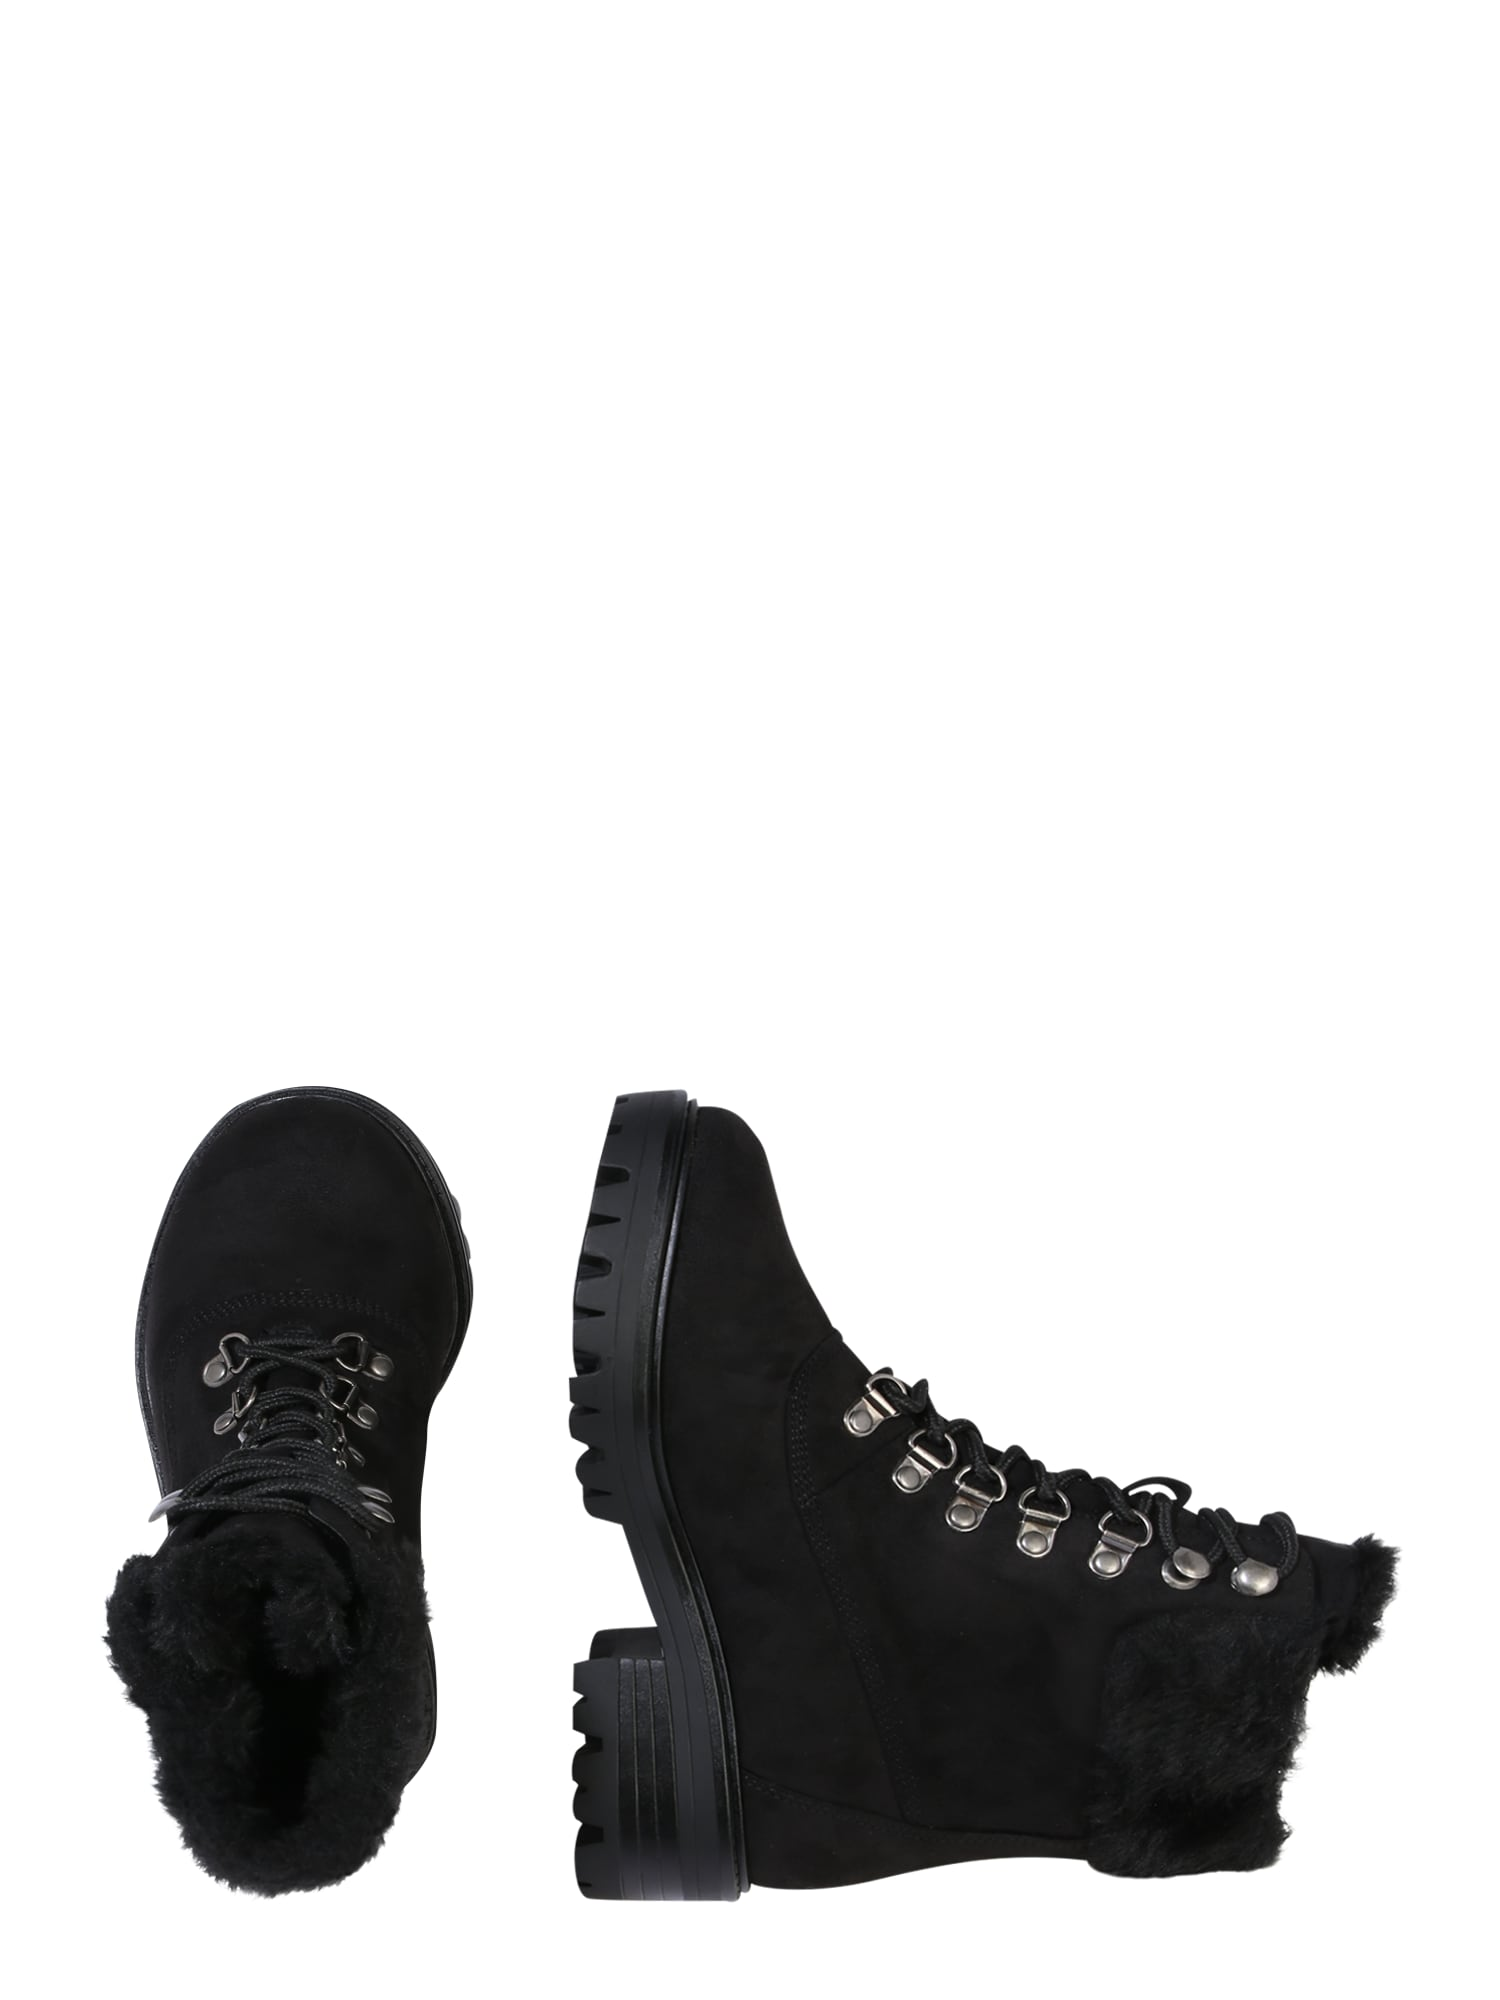 dorothy perkins - Boots 'MILLIE'